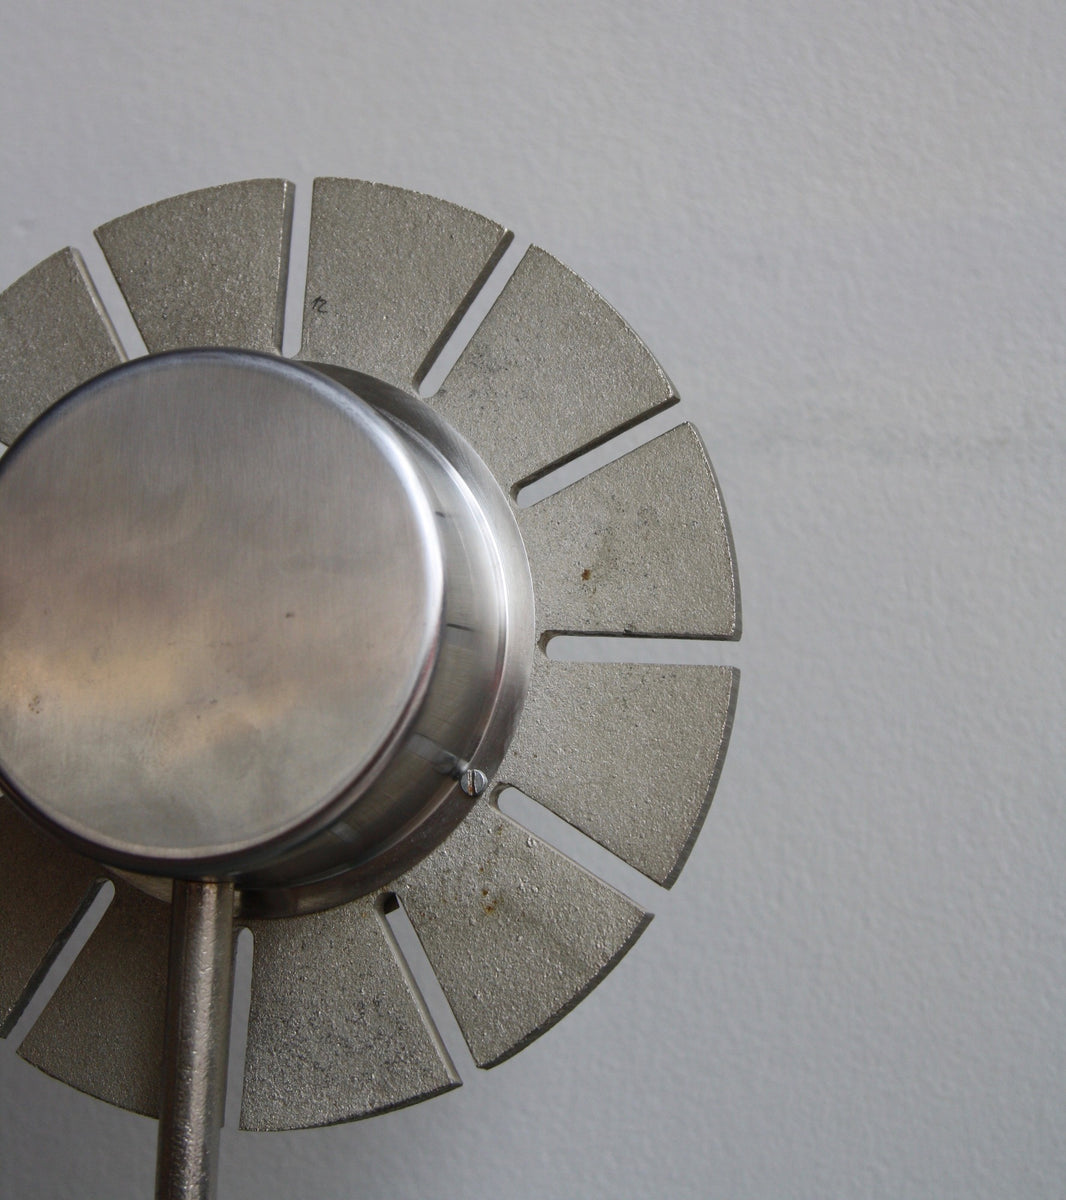 Mid-20th Century Cast Nickel Table Clock by Austrian Carl Auböck - Image 2